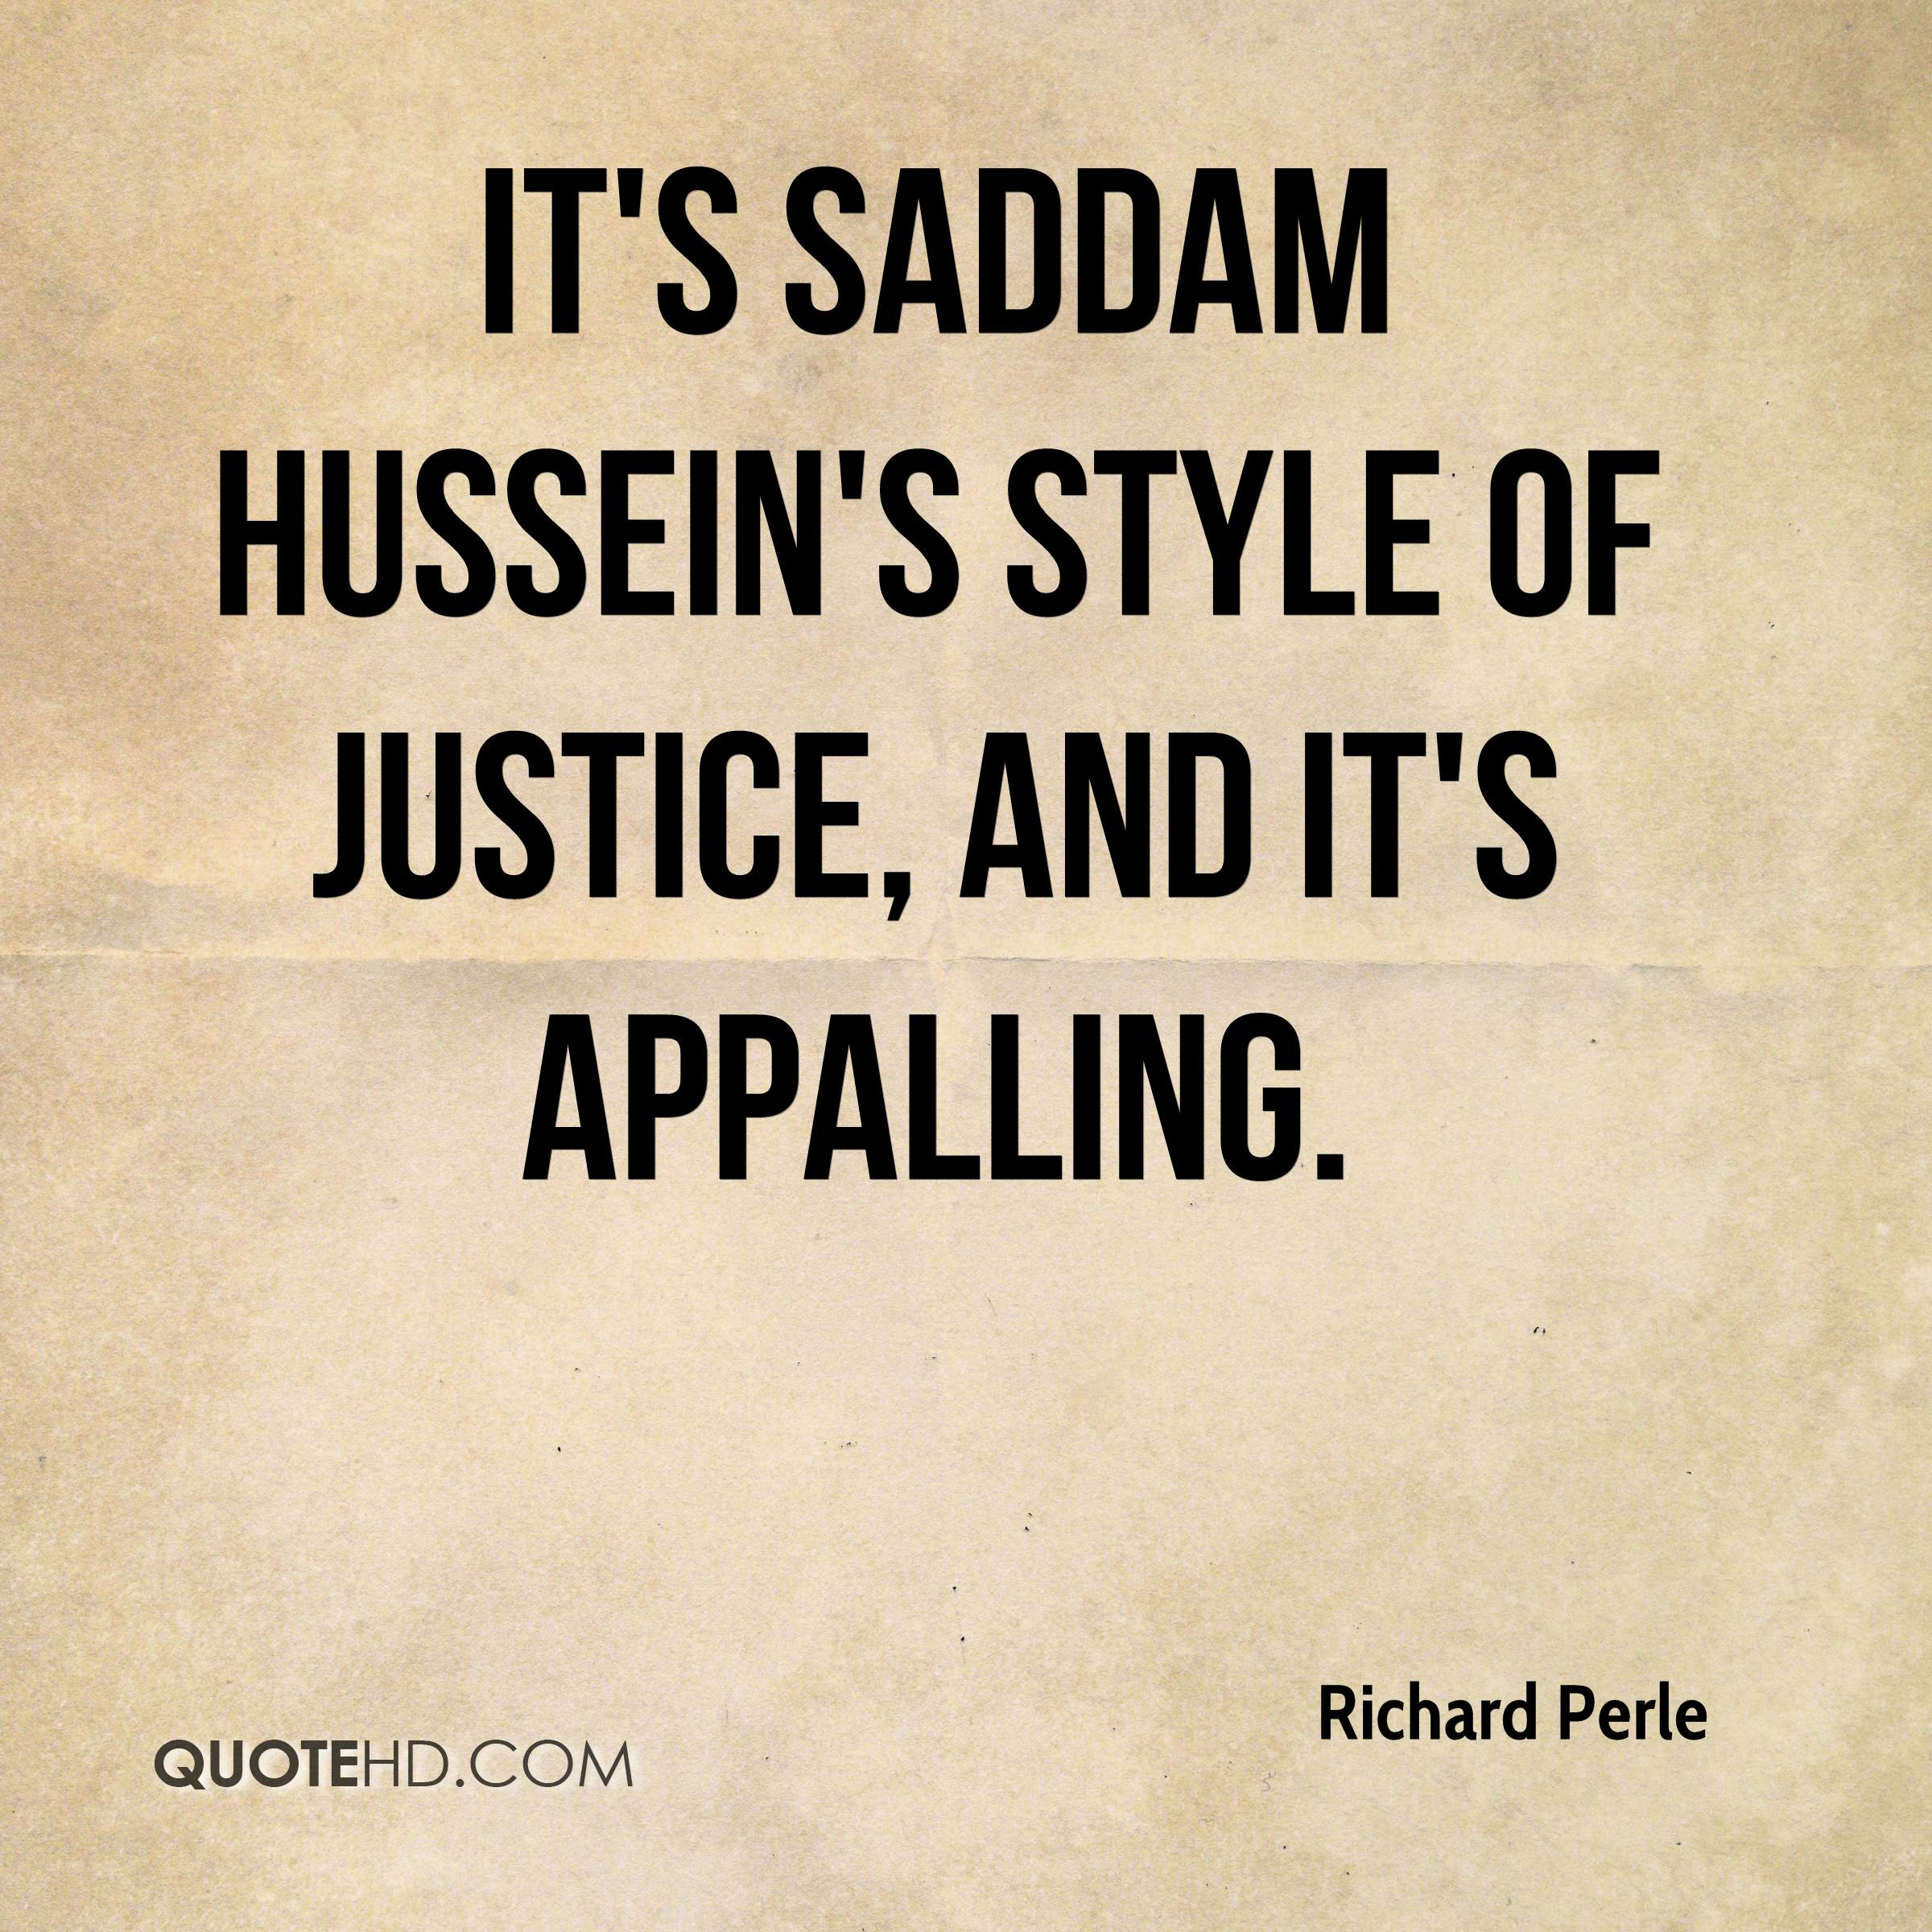 It's Saddam Hussein's style of justice, and it's appalling.